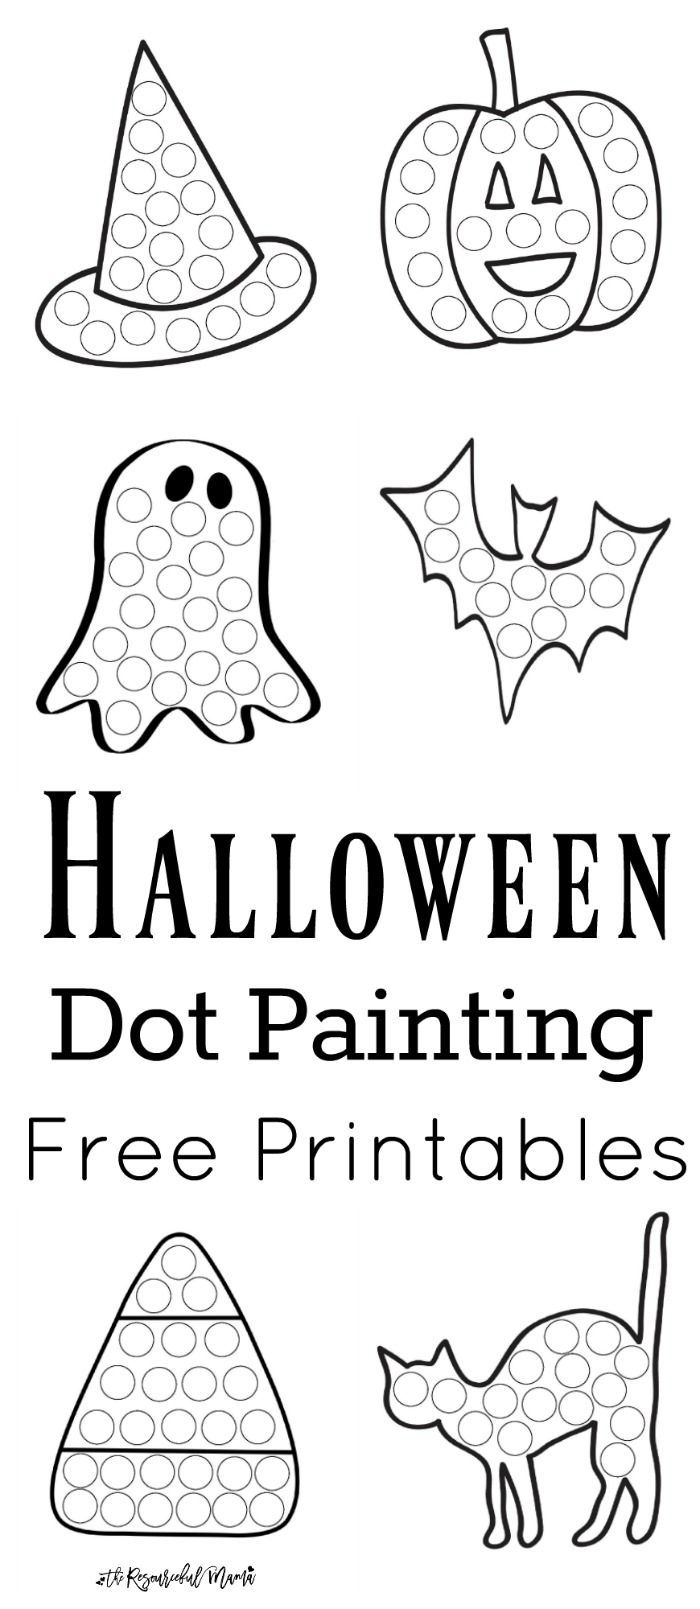 halloween dot painting free printables - Kids Painting Pictures Printable